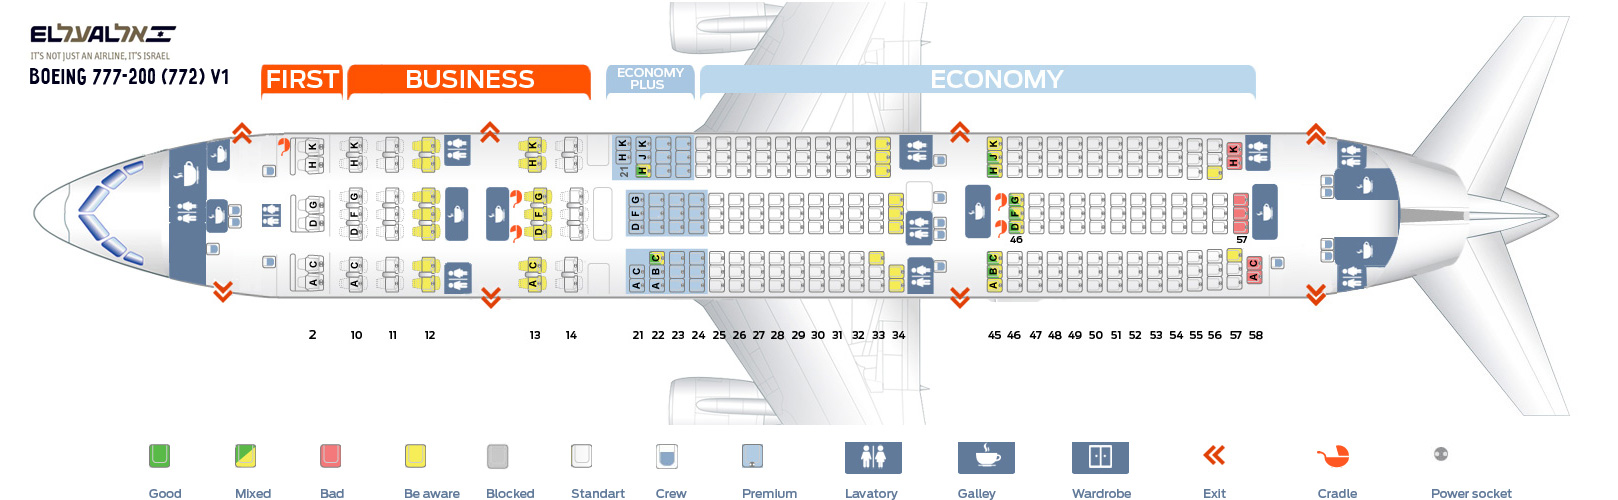 Choosing the best seats in a Boeing 777,200 aircraft (photos and diagrams)